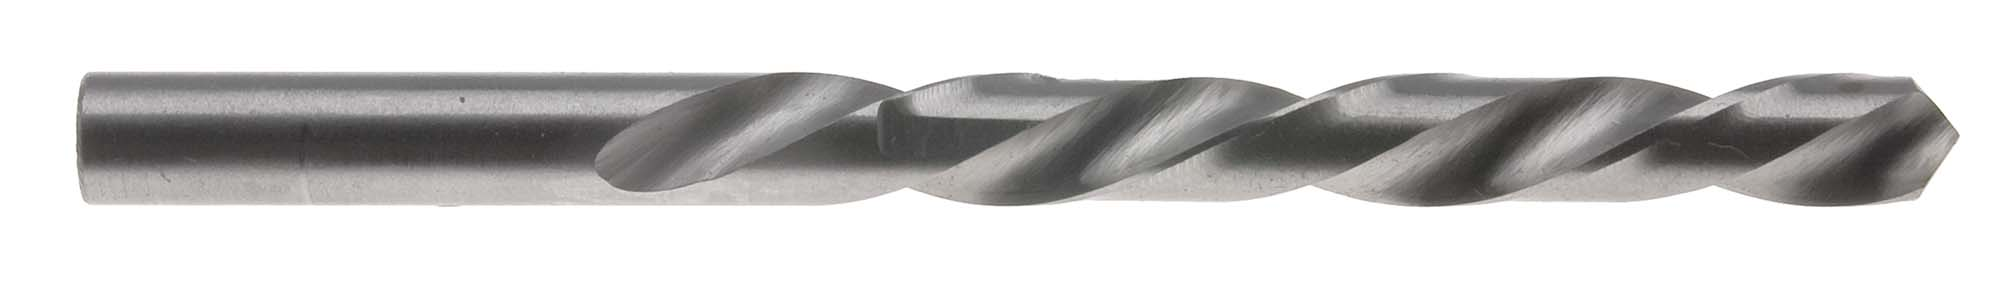 "#57 (.0430"") Left Hand Jobber Drill Bit, High Speed Steel"